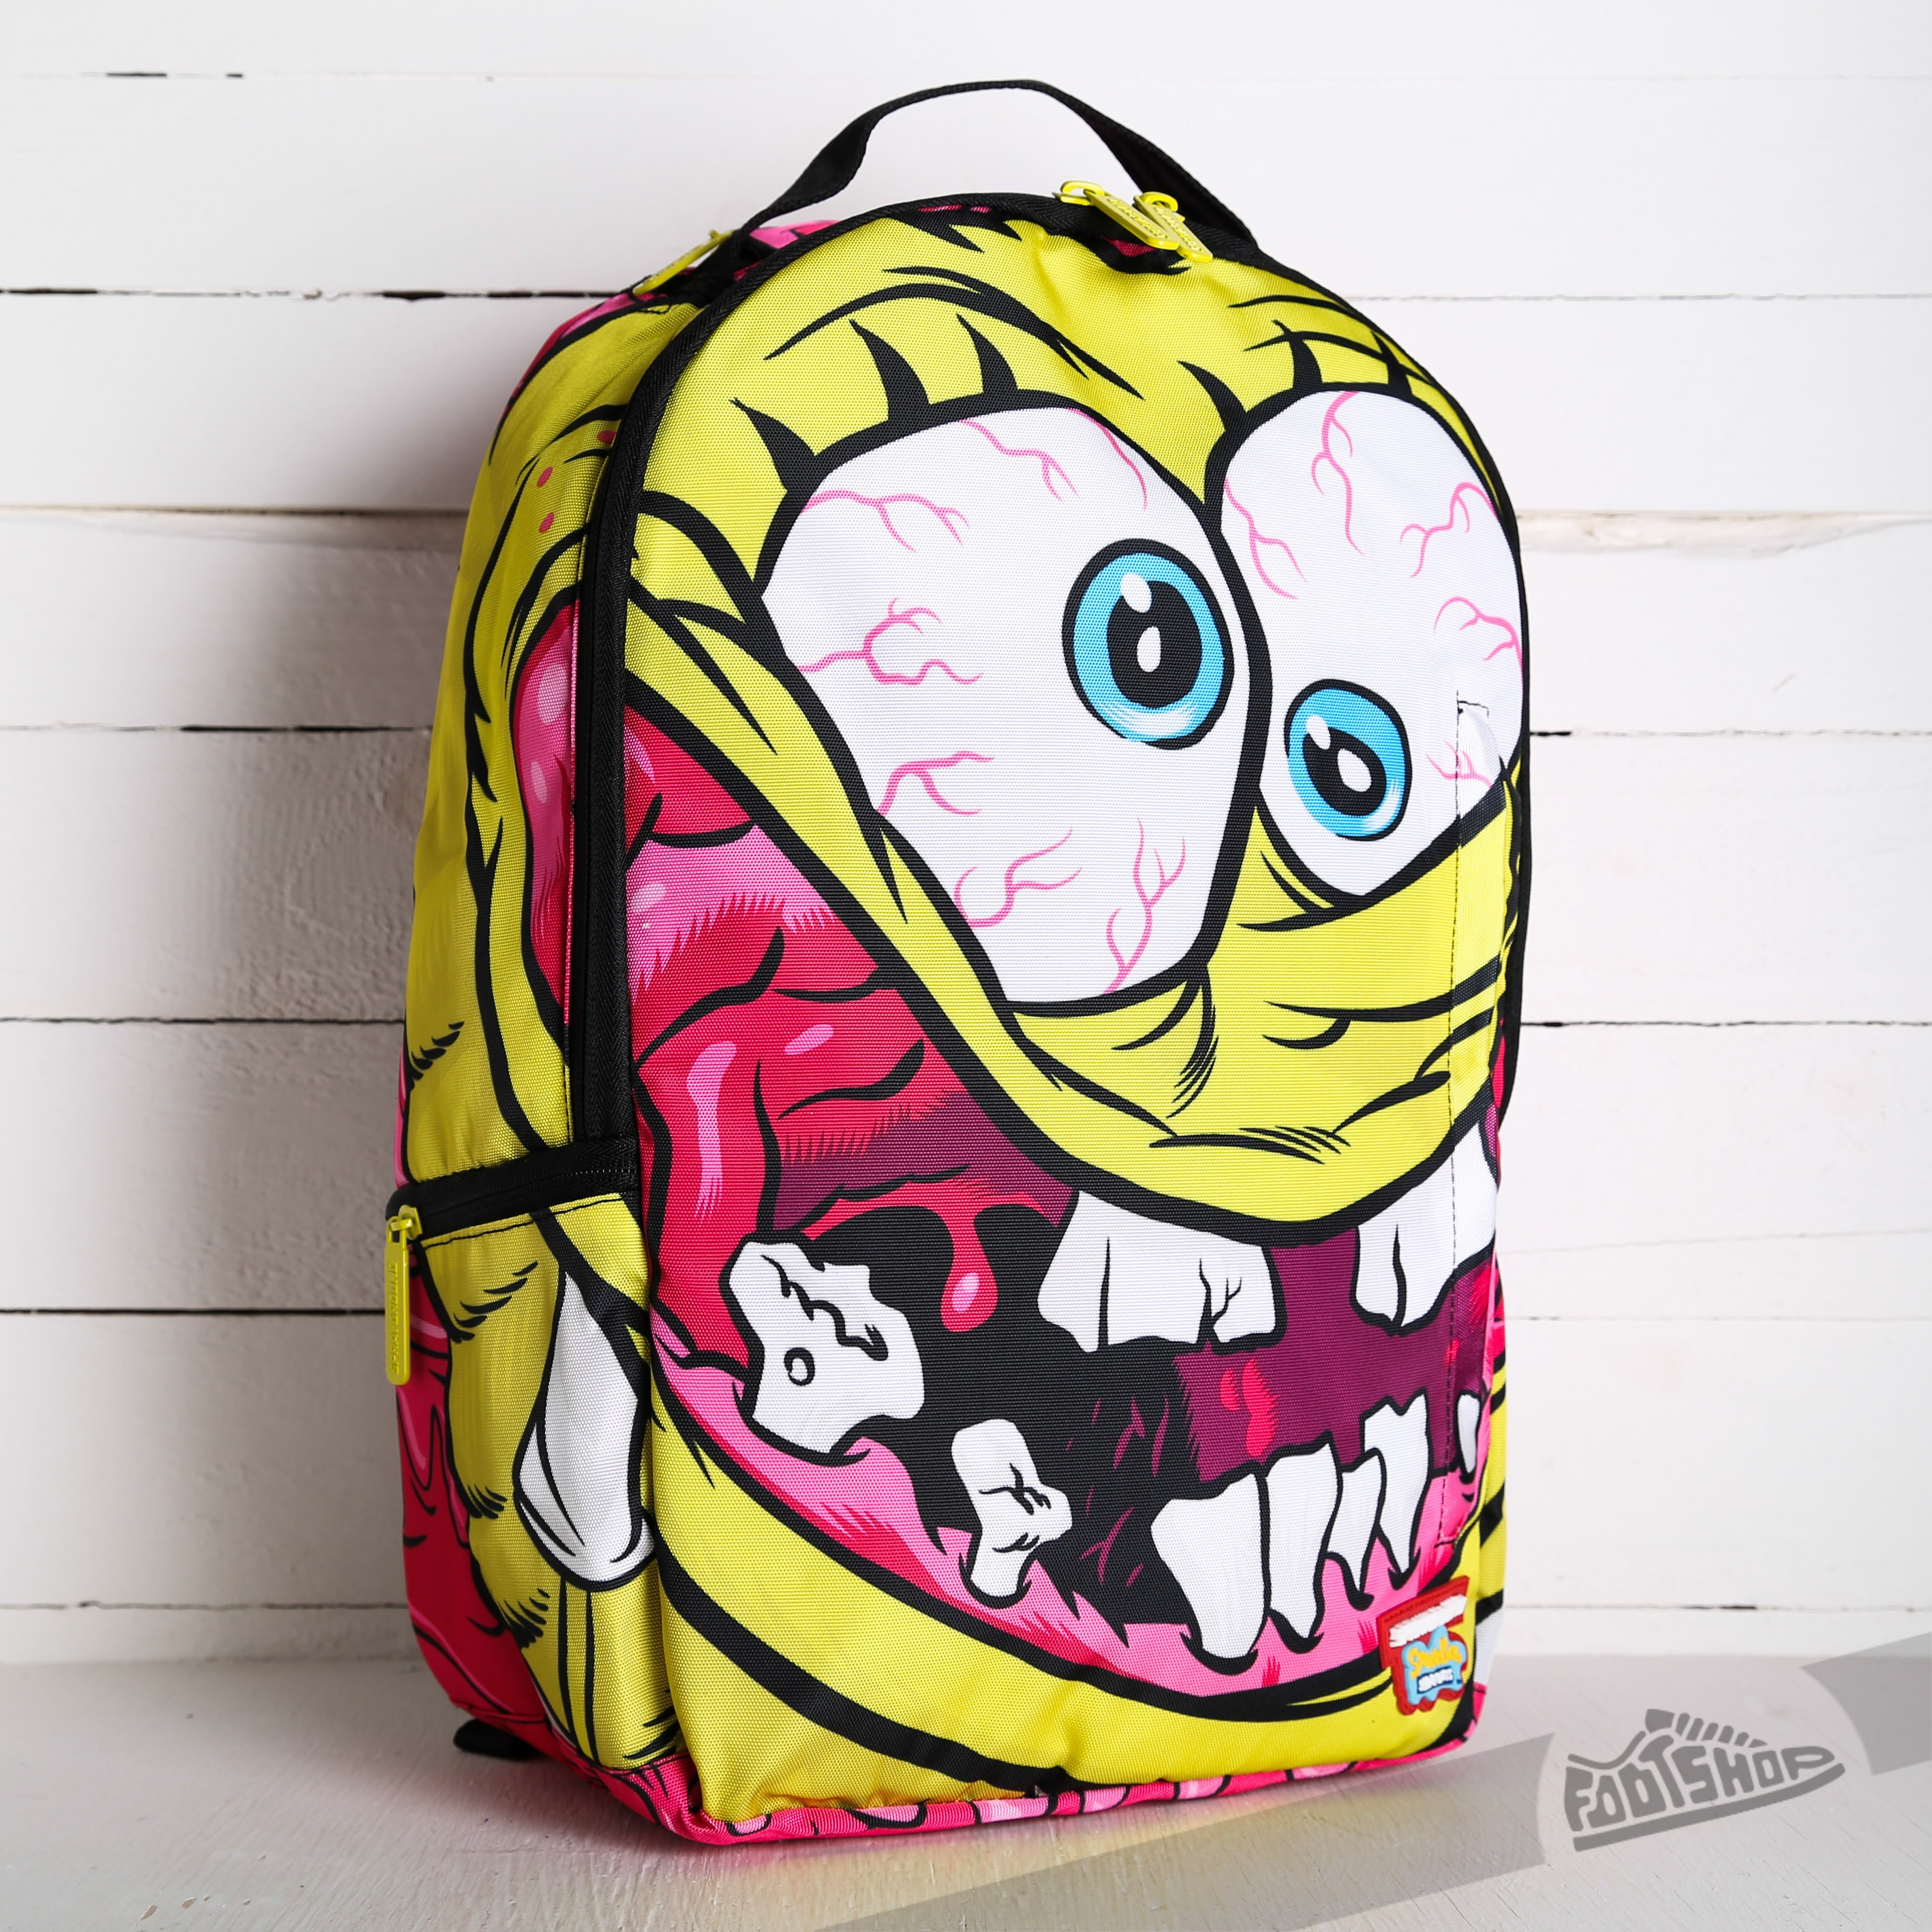 35a3ccc7281 Sprayground Spongebob Crazypants